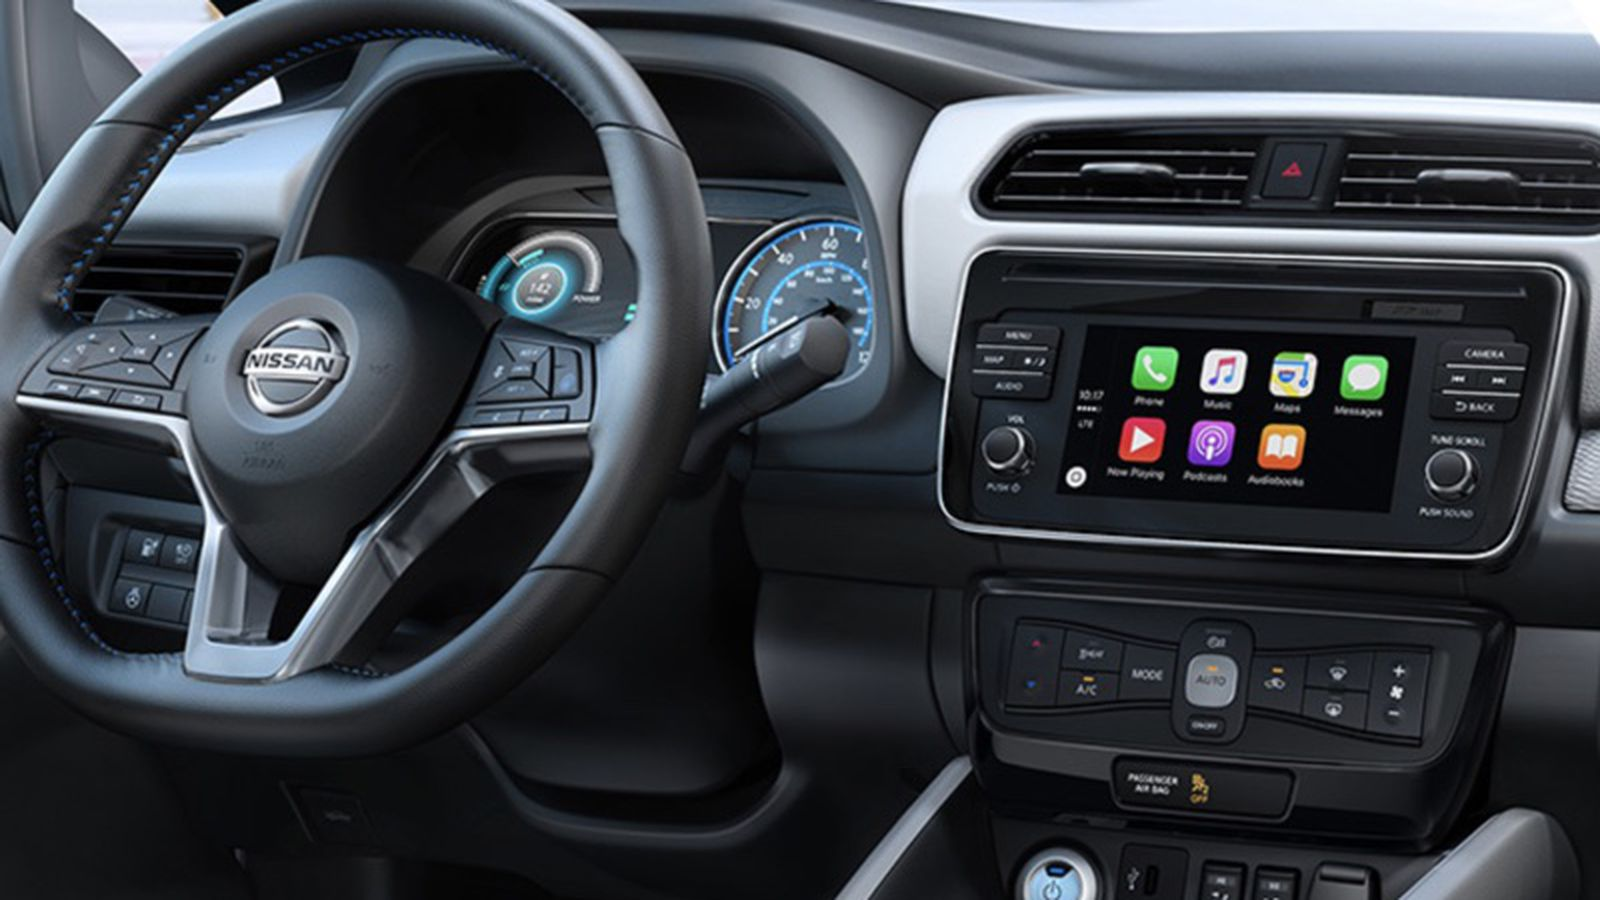 New 2018 Nissan Leaf Features Support For Carplay Macrumors